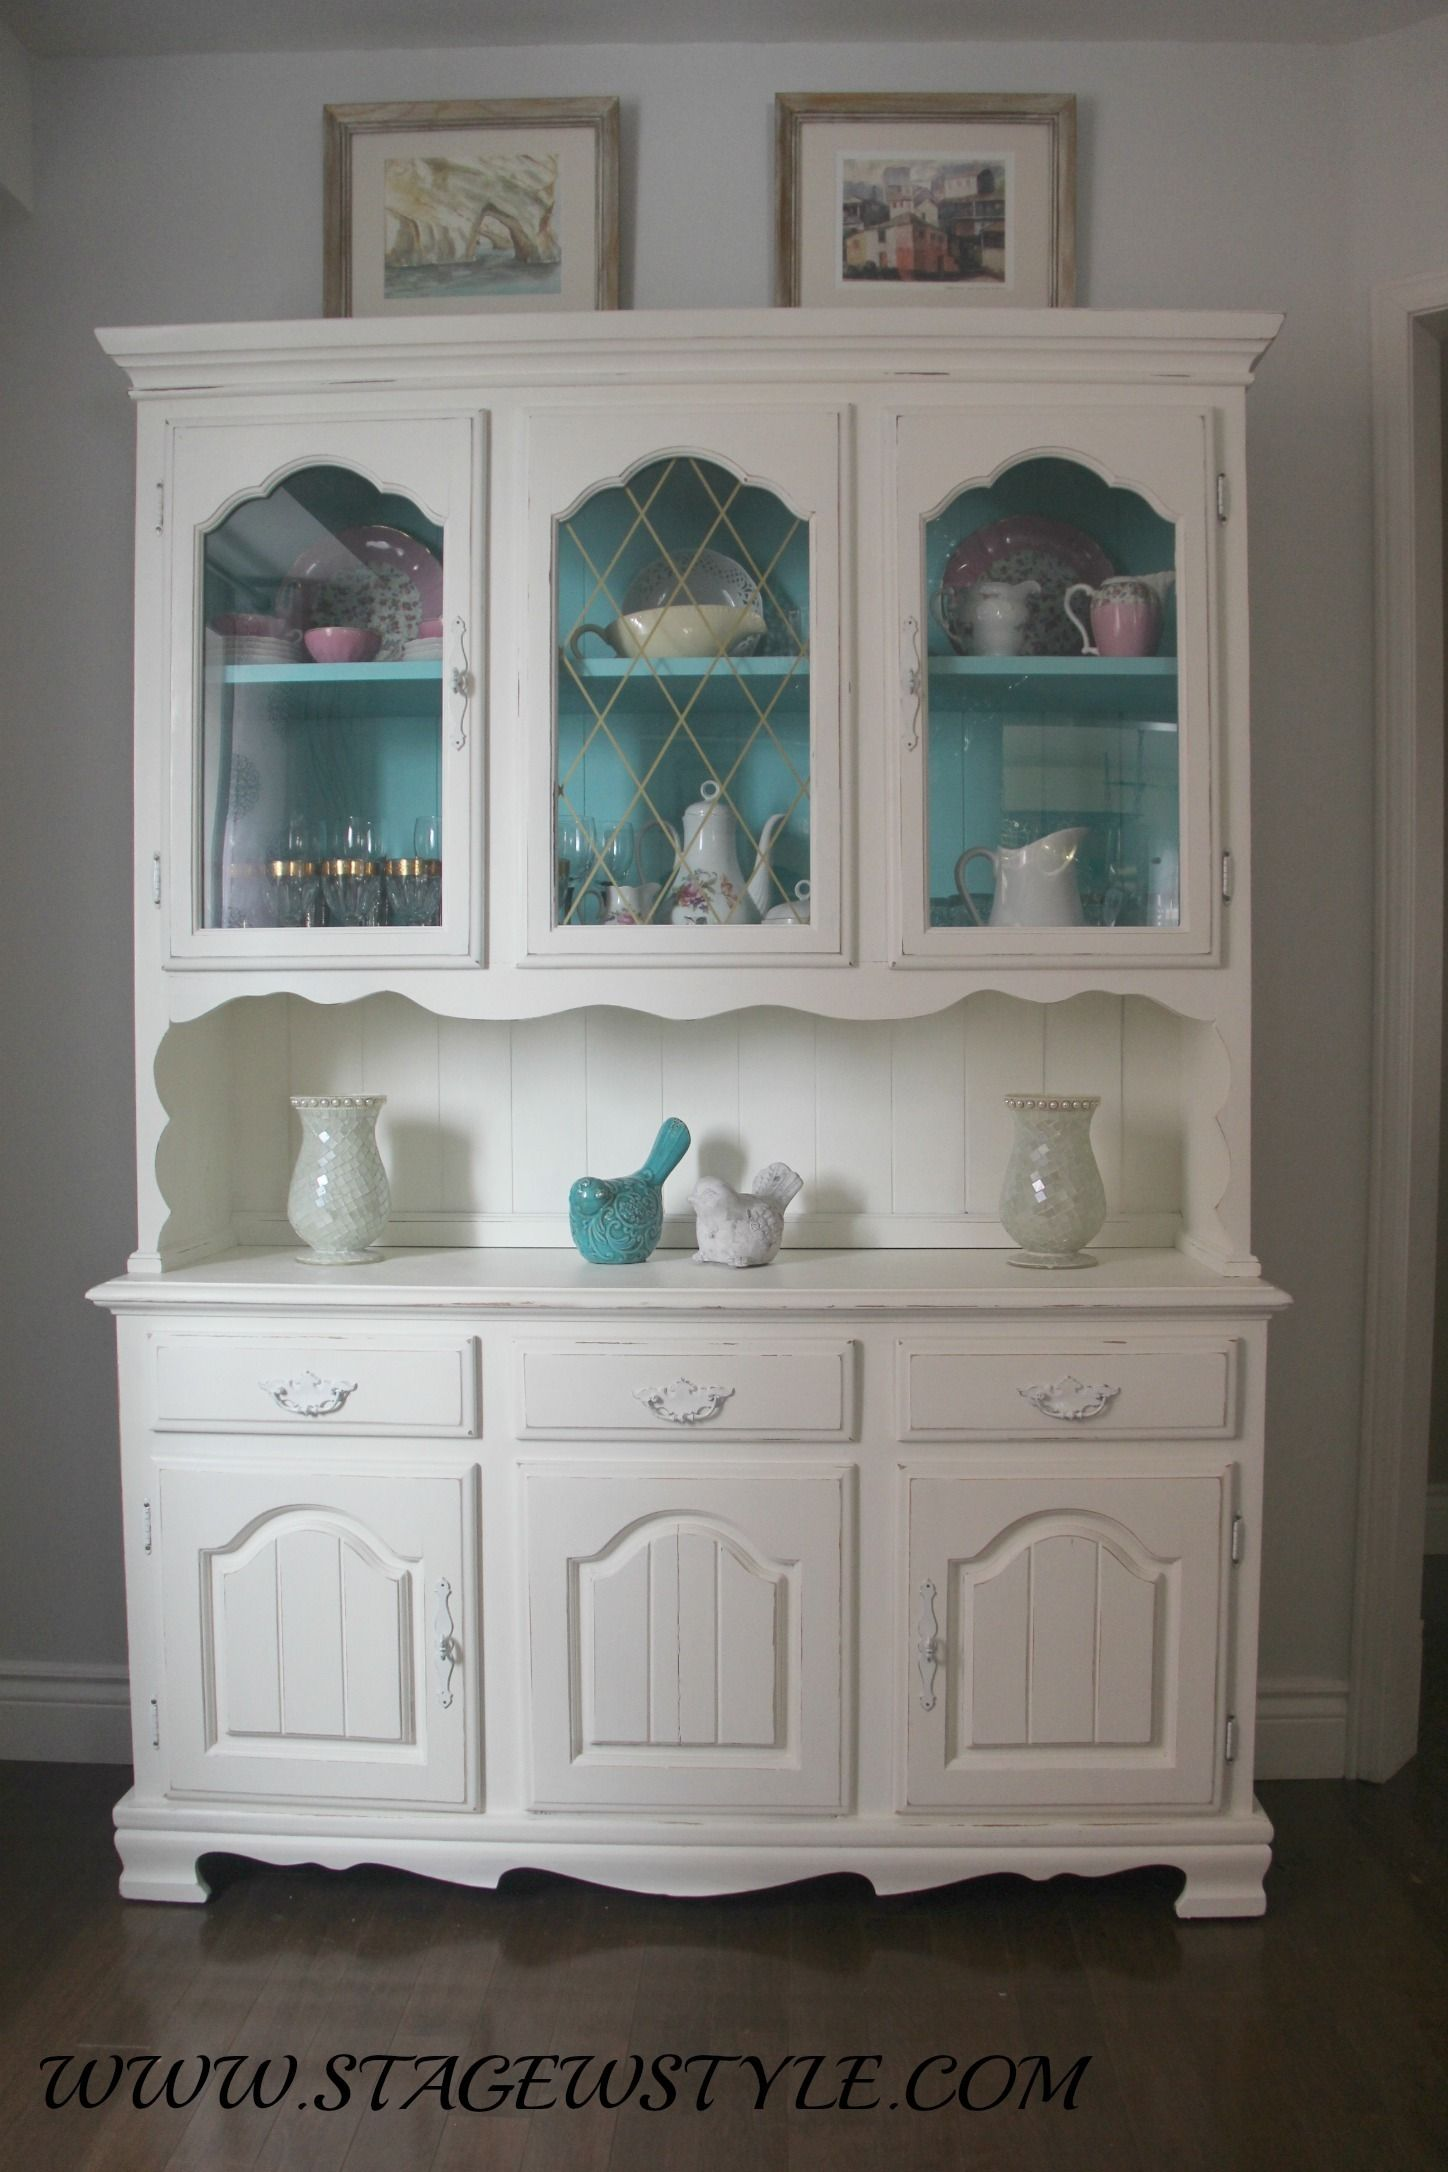 China cabinet makeover  stage with style DIY  DIY